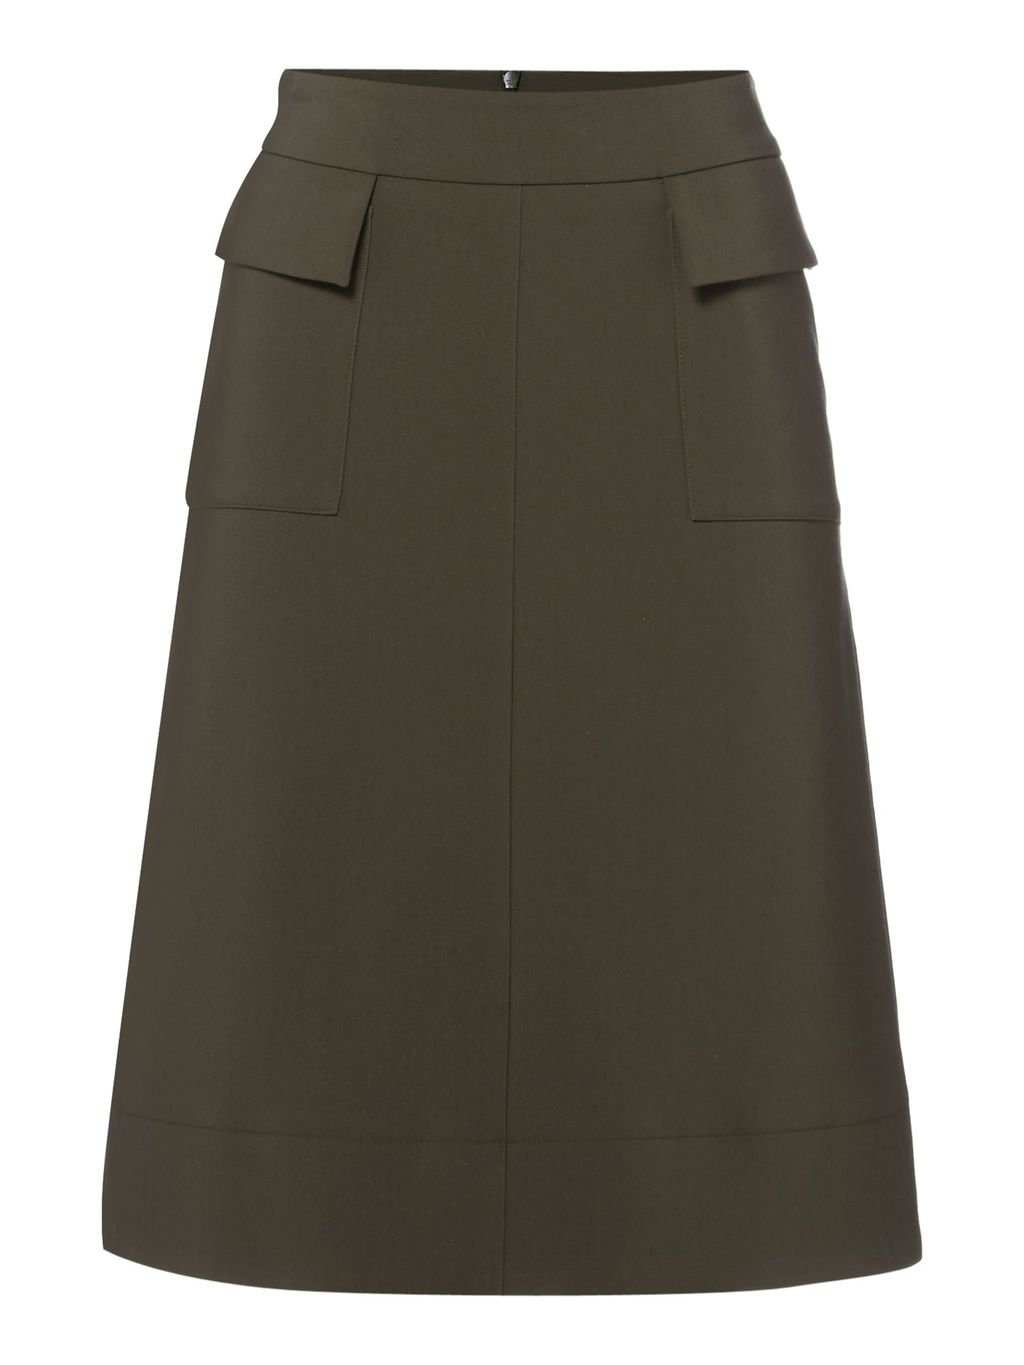 Military Detail Skirt, Khaki - length: below the knee; pattern: plain; waist: high rise; predominant colour: khaki; occasions: casual, creative work; style: a-line; fibres: cotton - mix; hip detail: subtle/flattering hip detail; fit: straight cut; pattern type: fabric; texture group: other - light to midweight; season: s/s 2016; wardrobe: basic